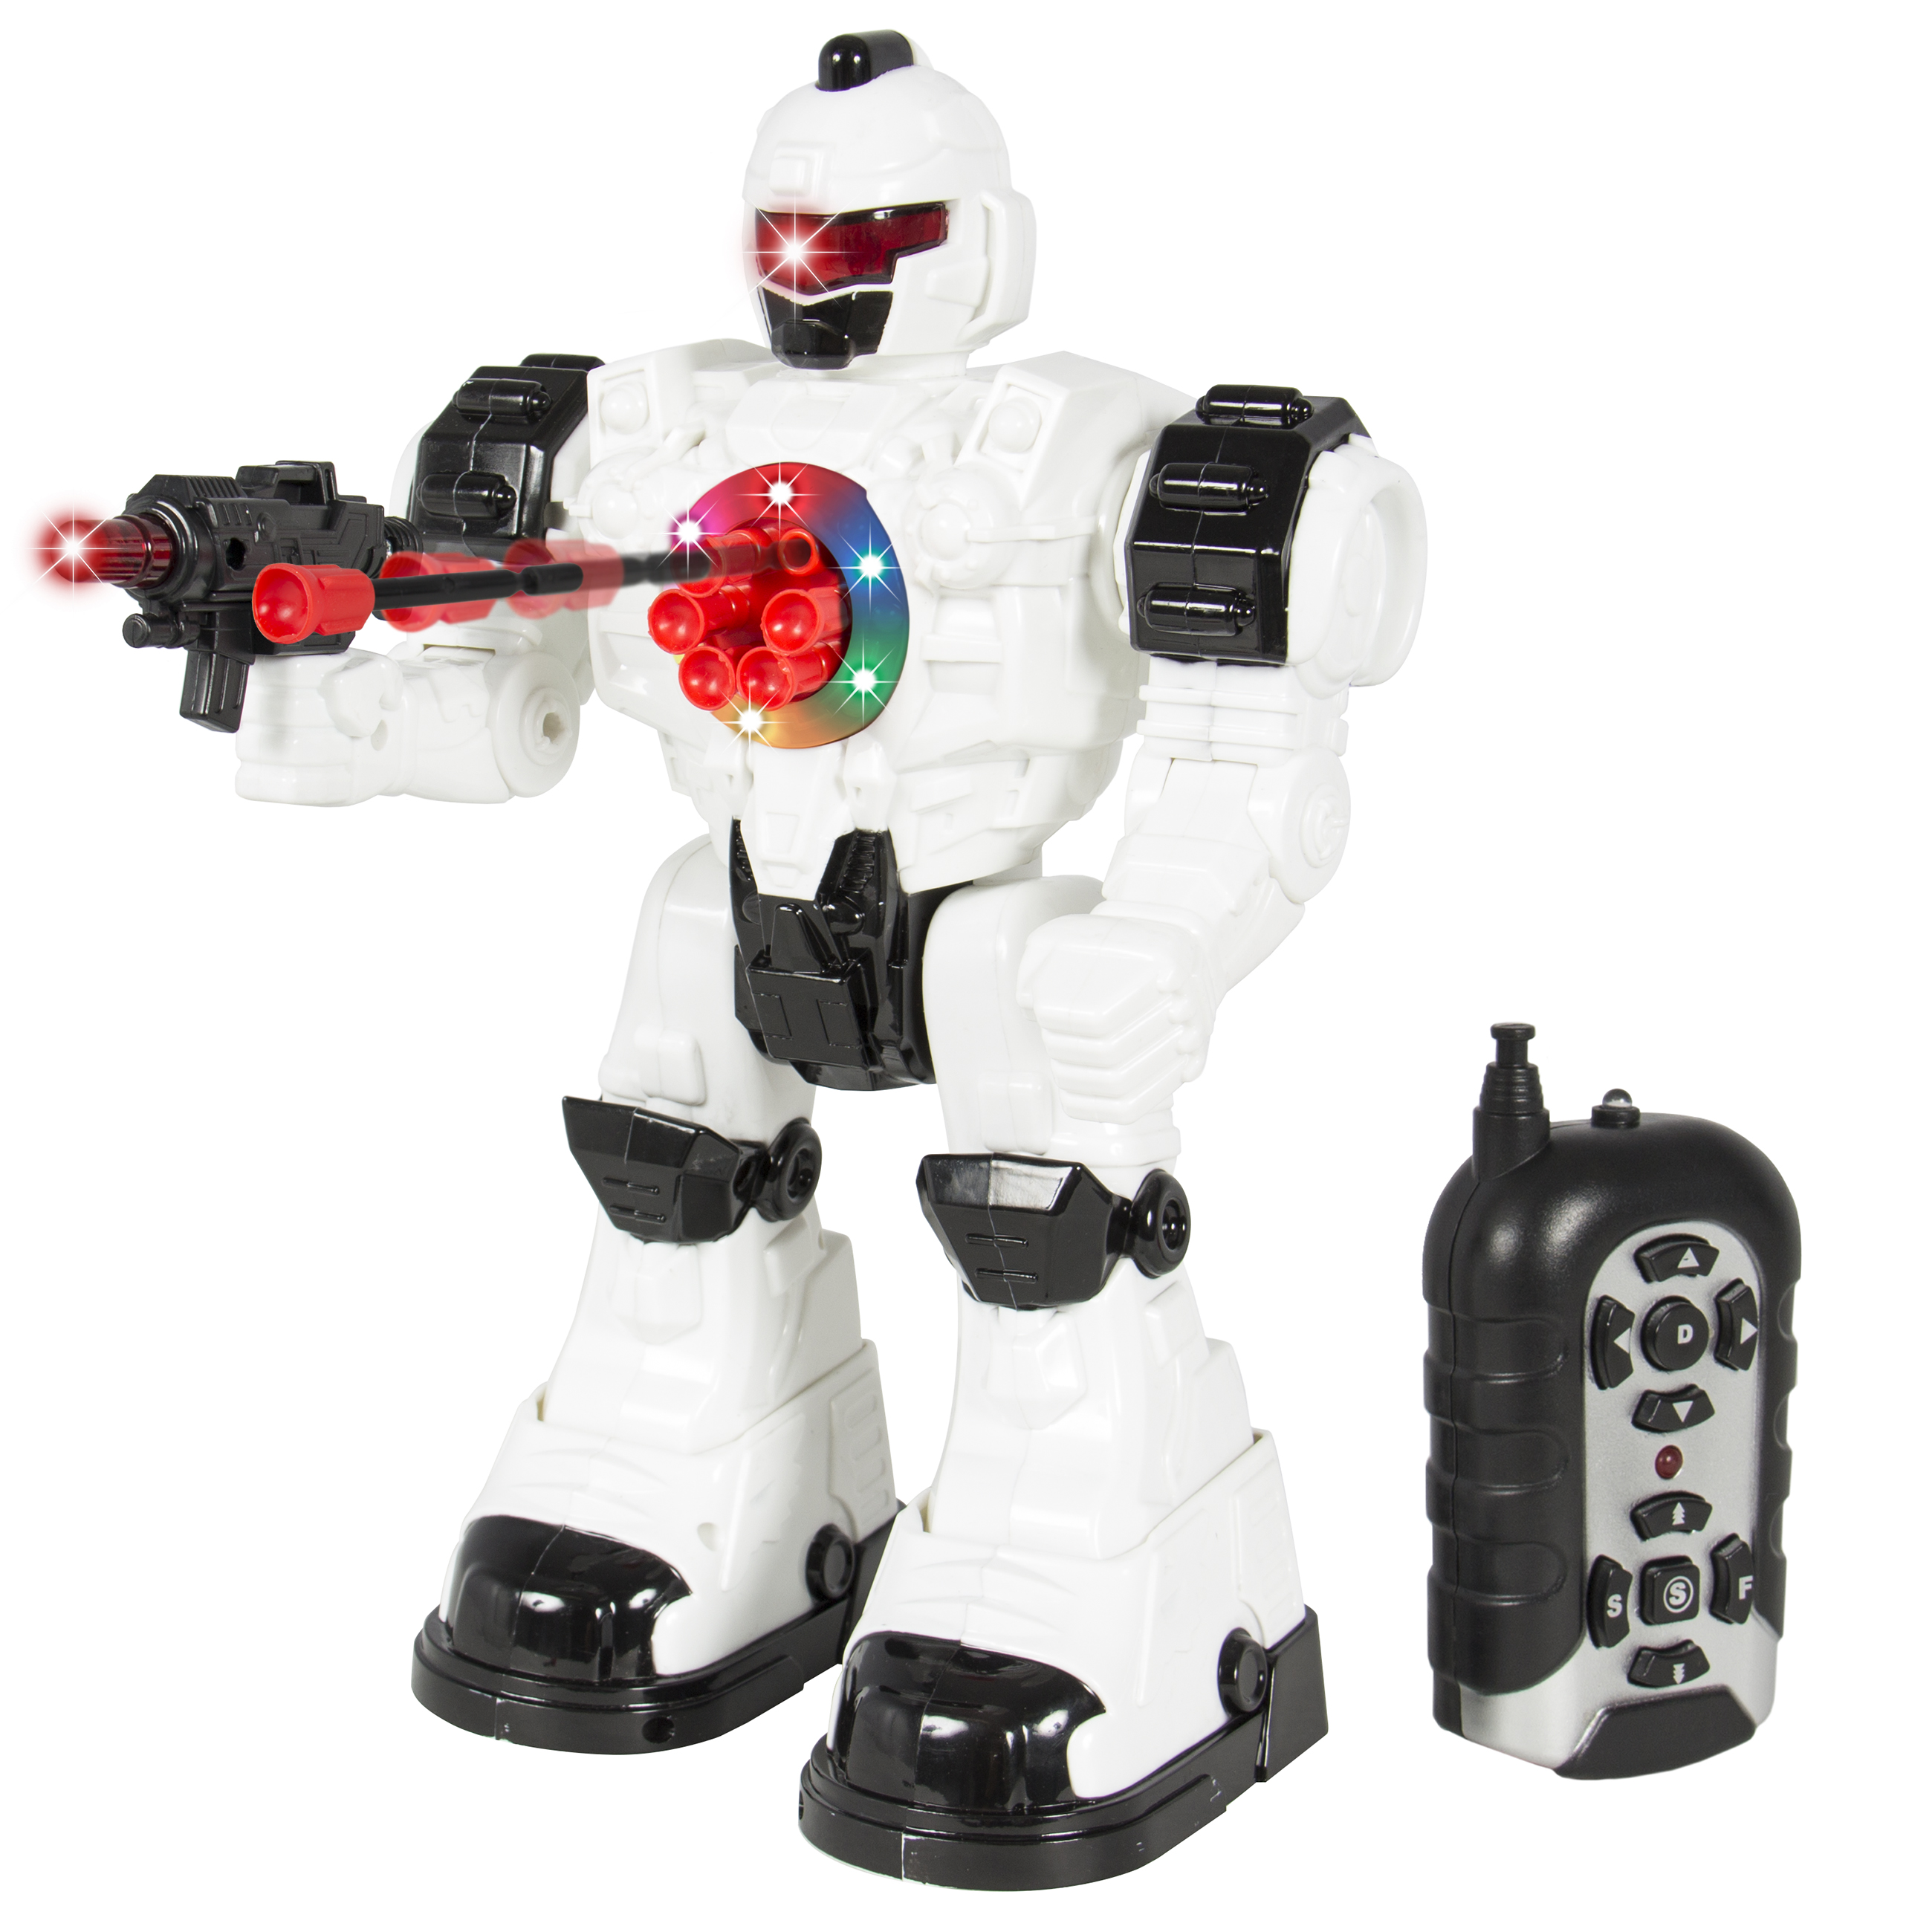 Best Choice Products RC Walking and Shooting Robot Toy w  Lights and Sound Effects White... by Best Choice Products